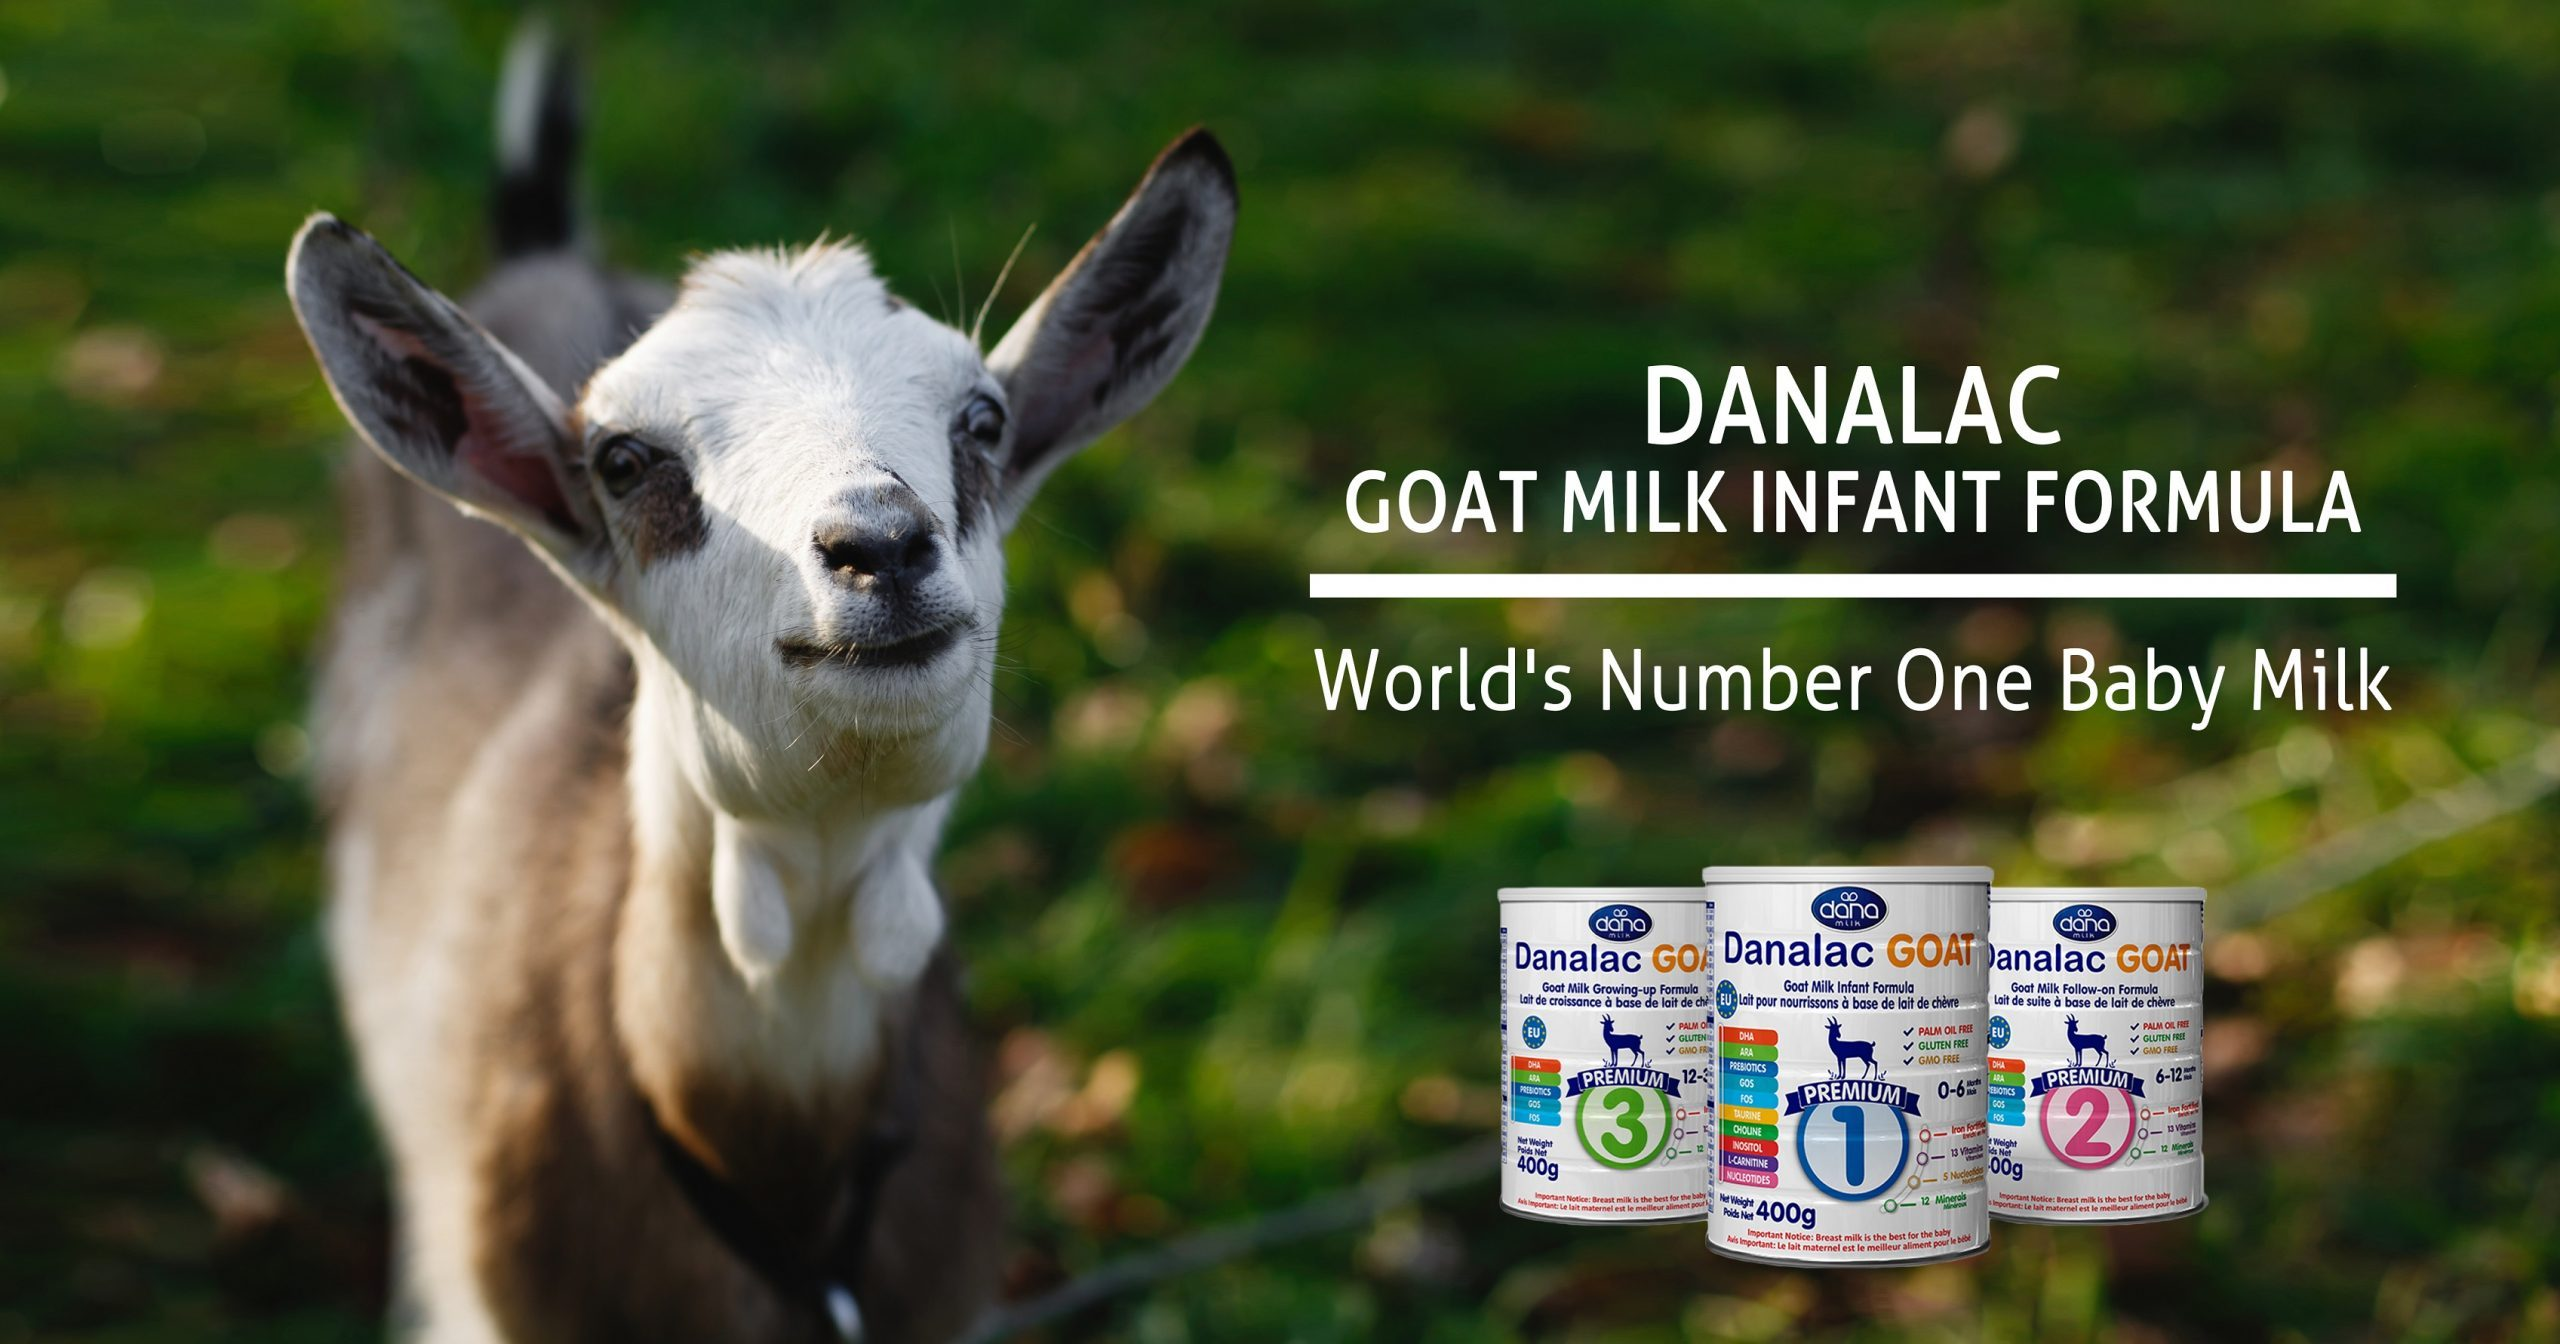 DANALAC Goat Milk infant formula - World Best Baby Milk